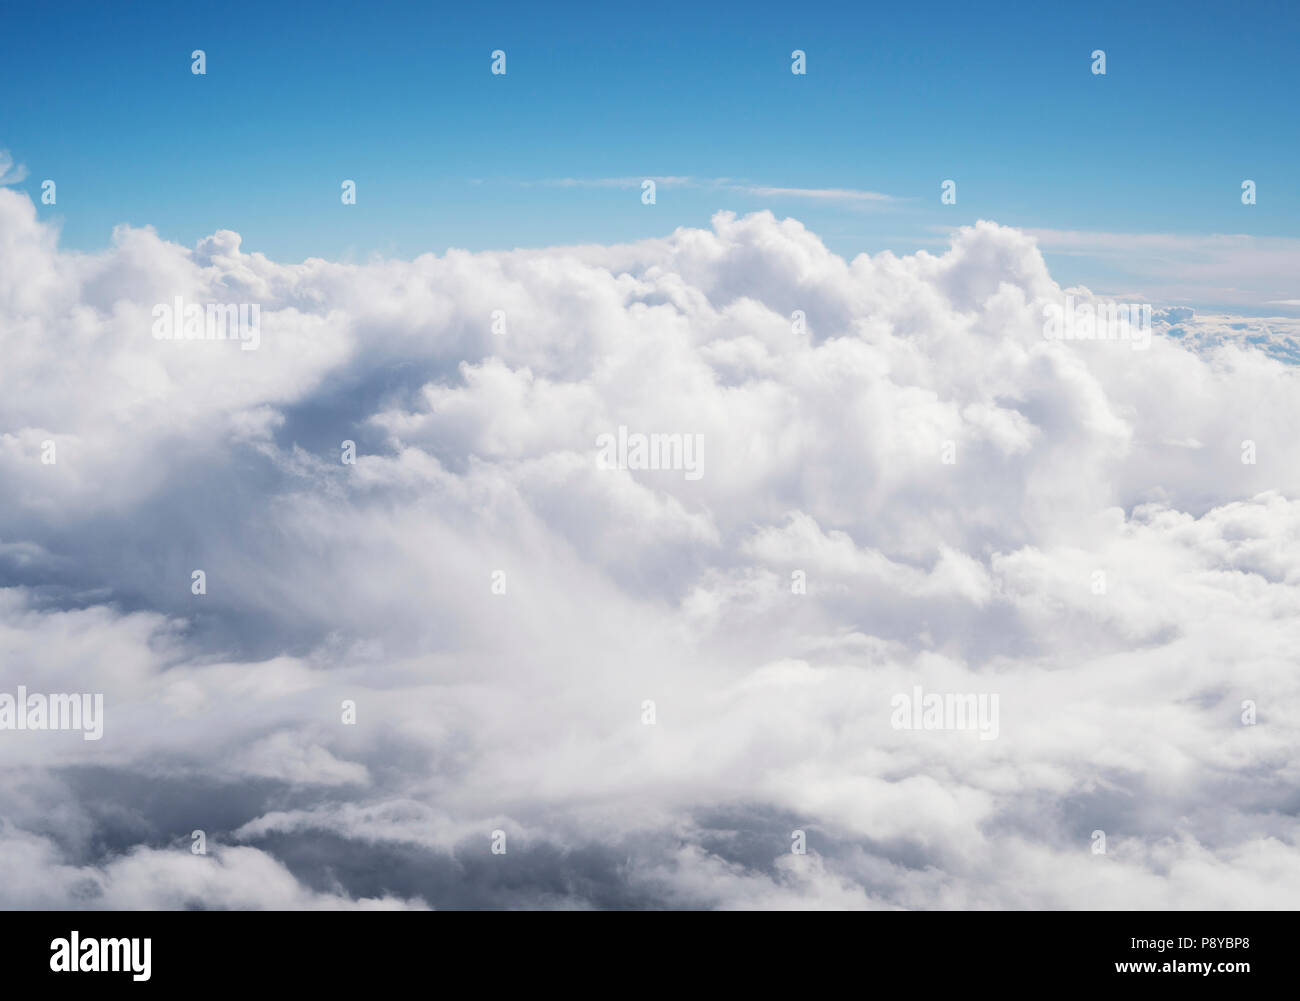 Clouds from aeroplane window. - Stock Image